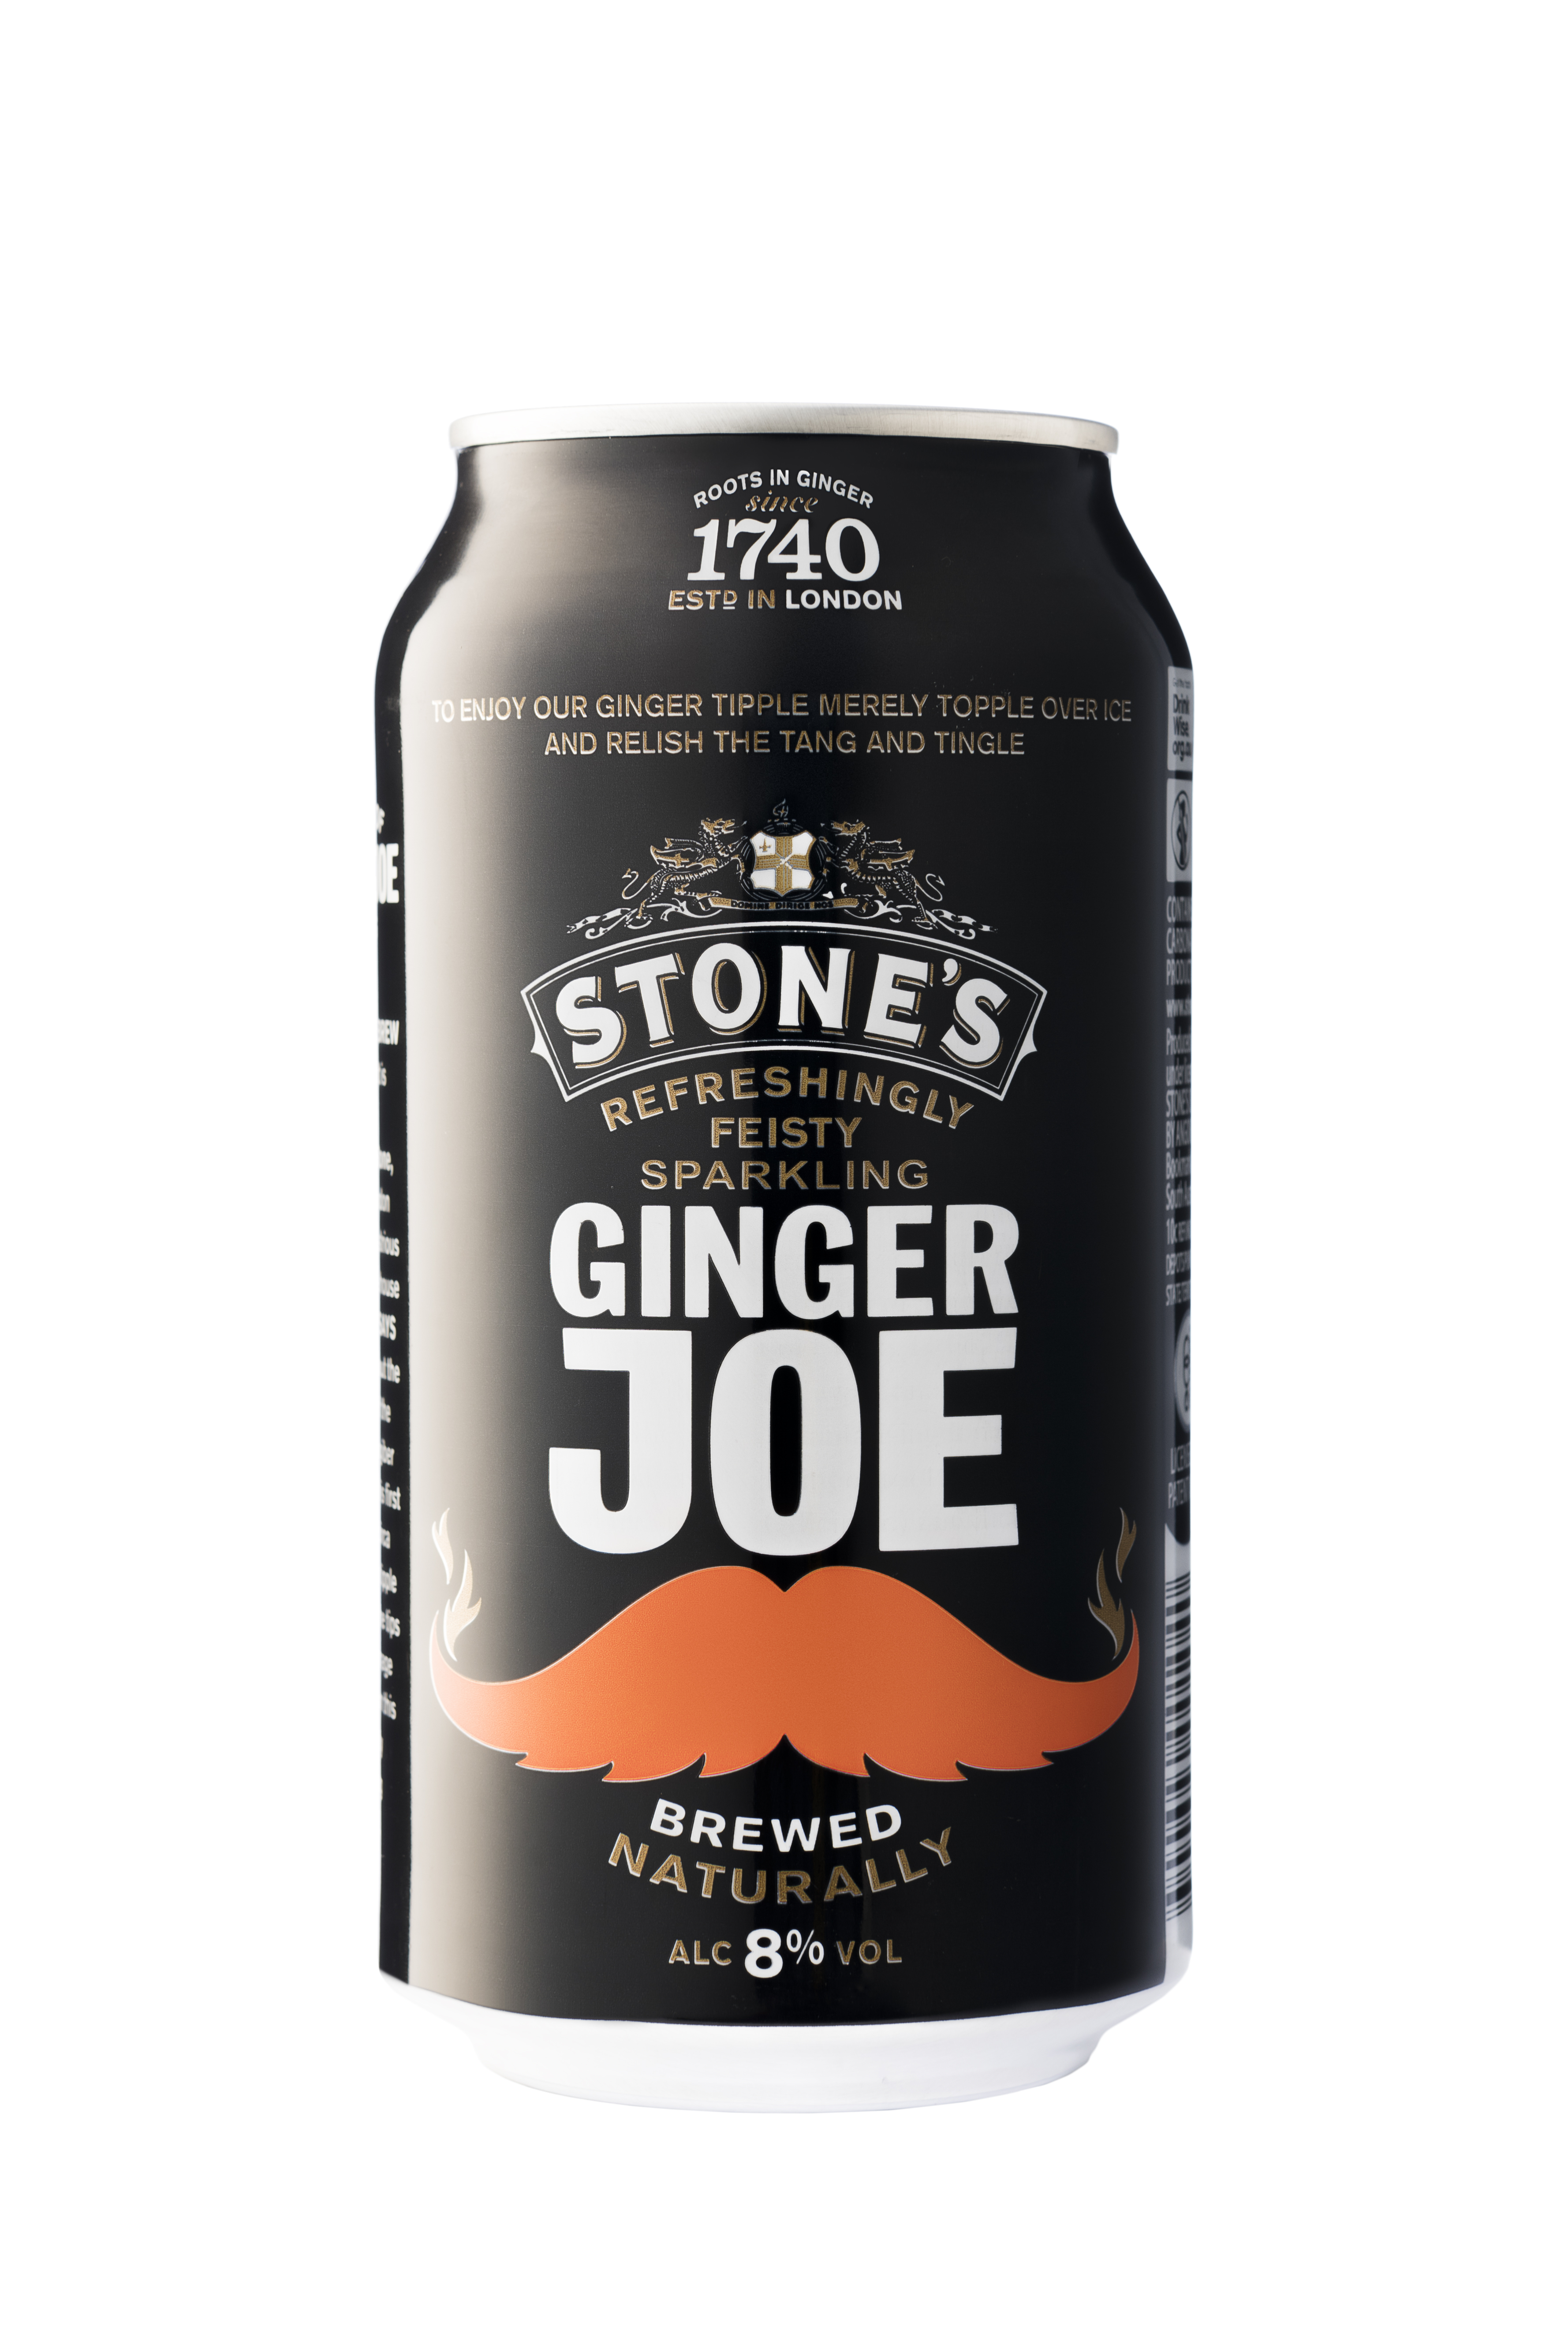 Stone's Ginger Joe Can